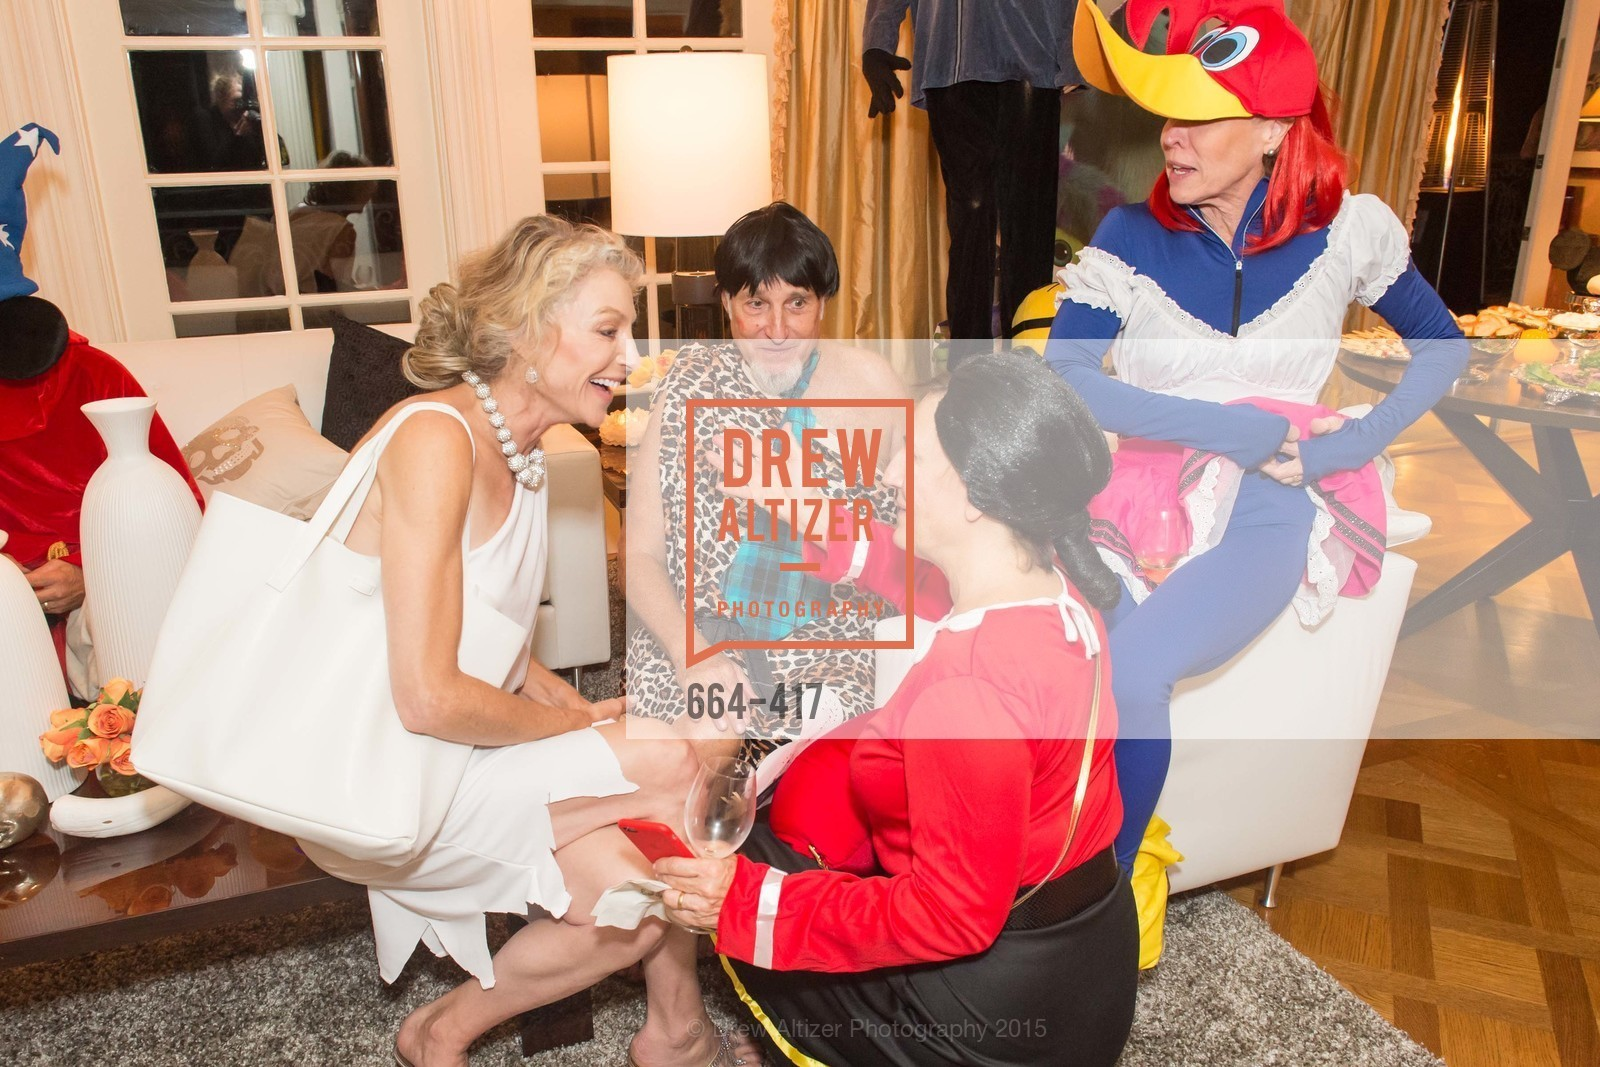 Alisa Burgess-Blajwas, Harold Blajwas, Debby Sagues, Sheila Nemer, Wolfson-Federighi Cartoon Costume Party, Private Residence. 737 Bay Road, October 24th, 2015,Drew Altizer, Drew Altizer Photography, full-service agency, private events, San Francisco photographer, photographer california